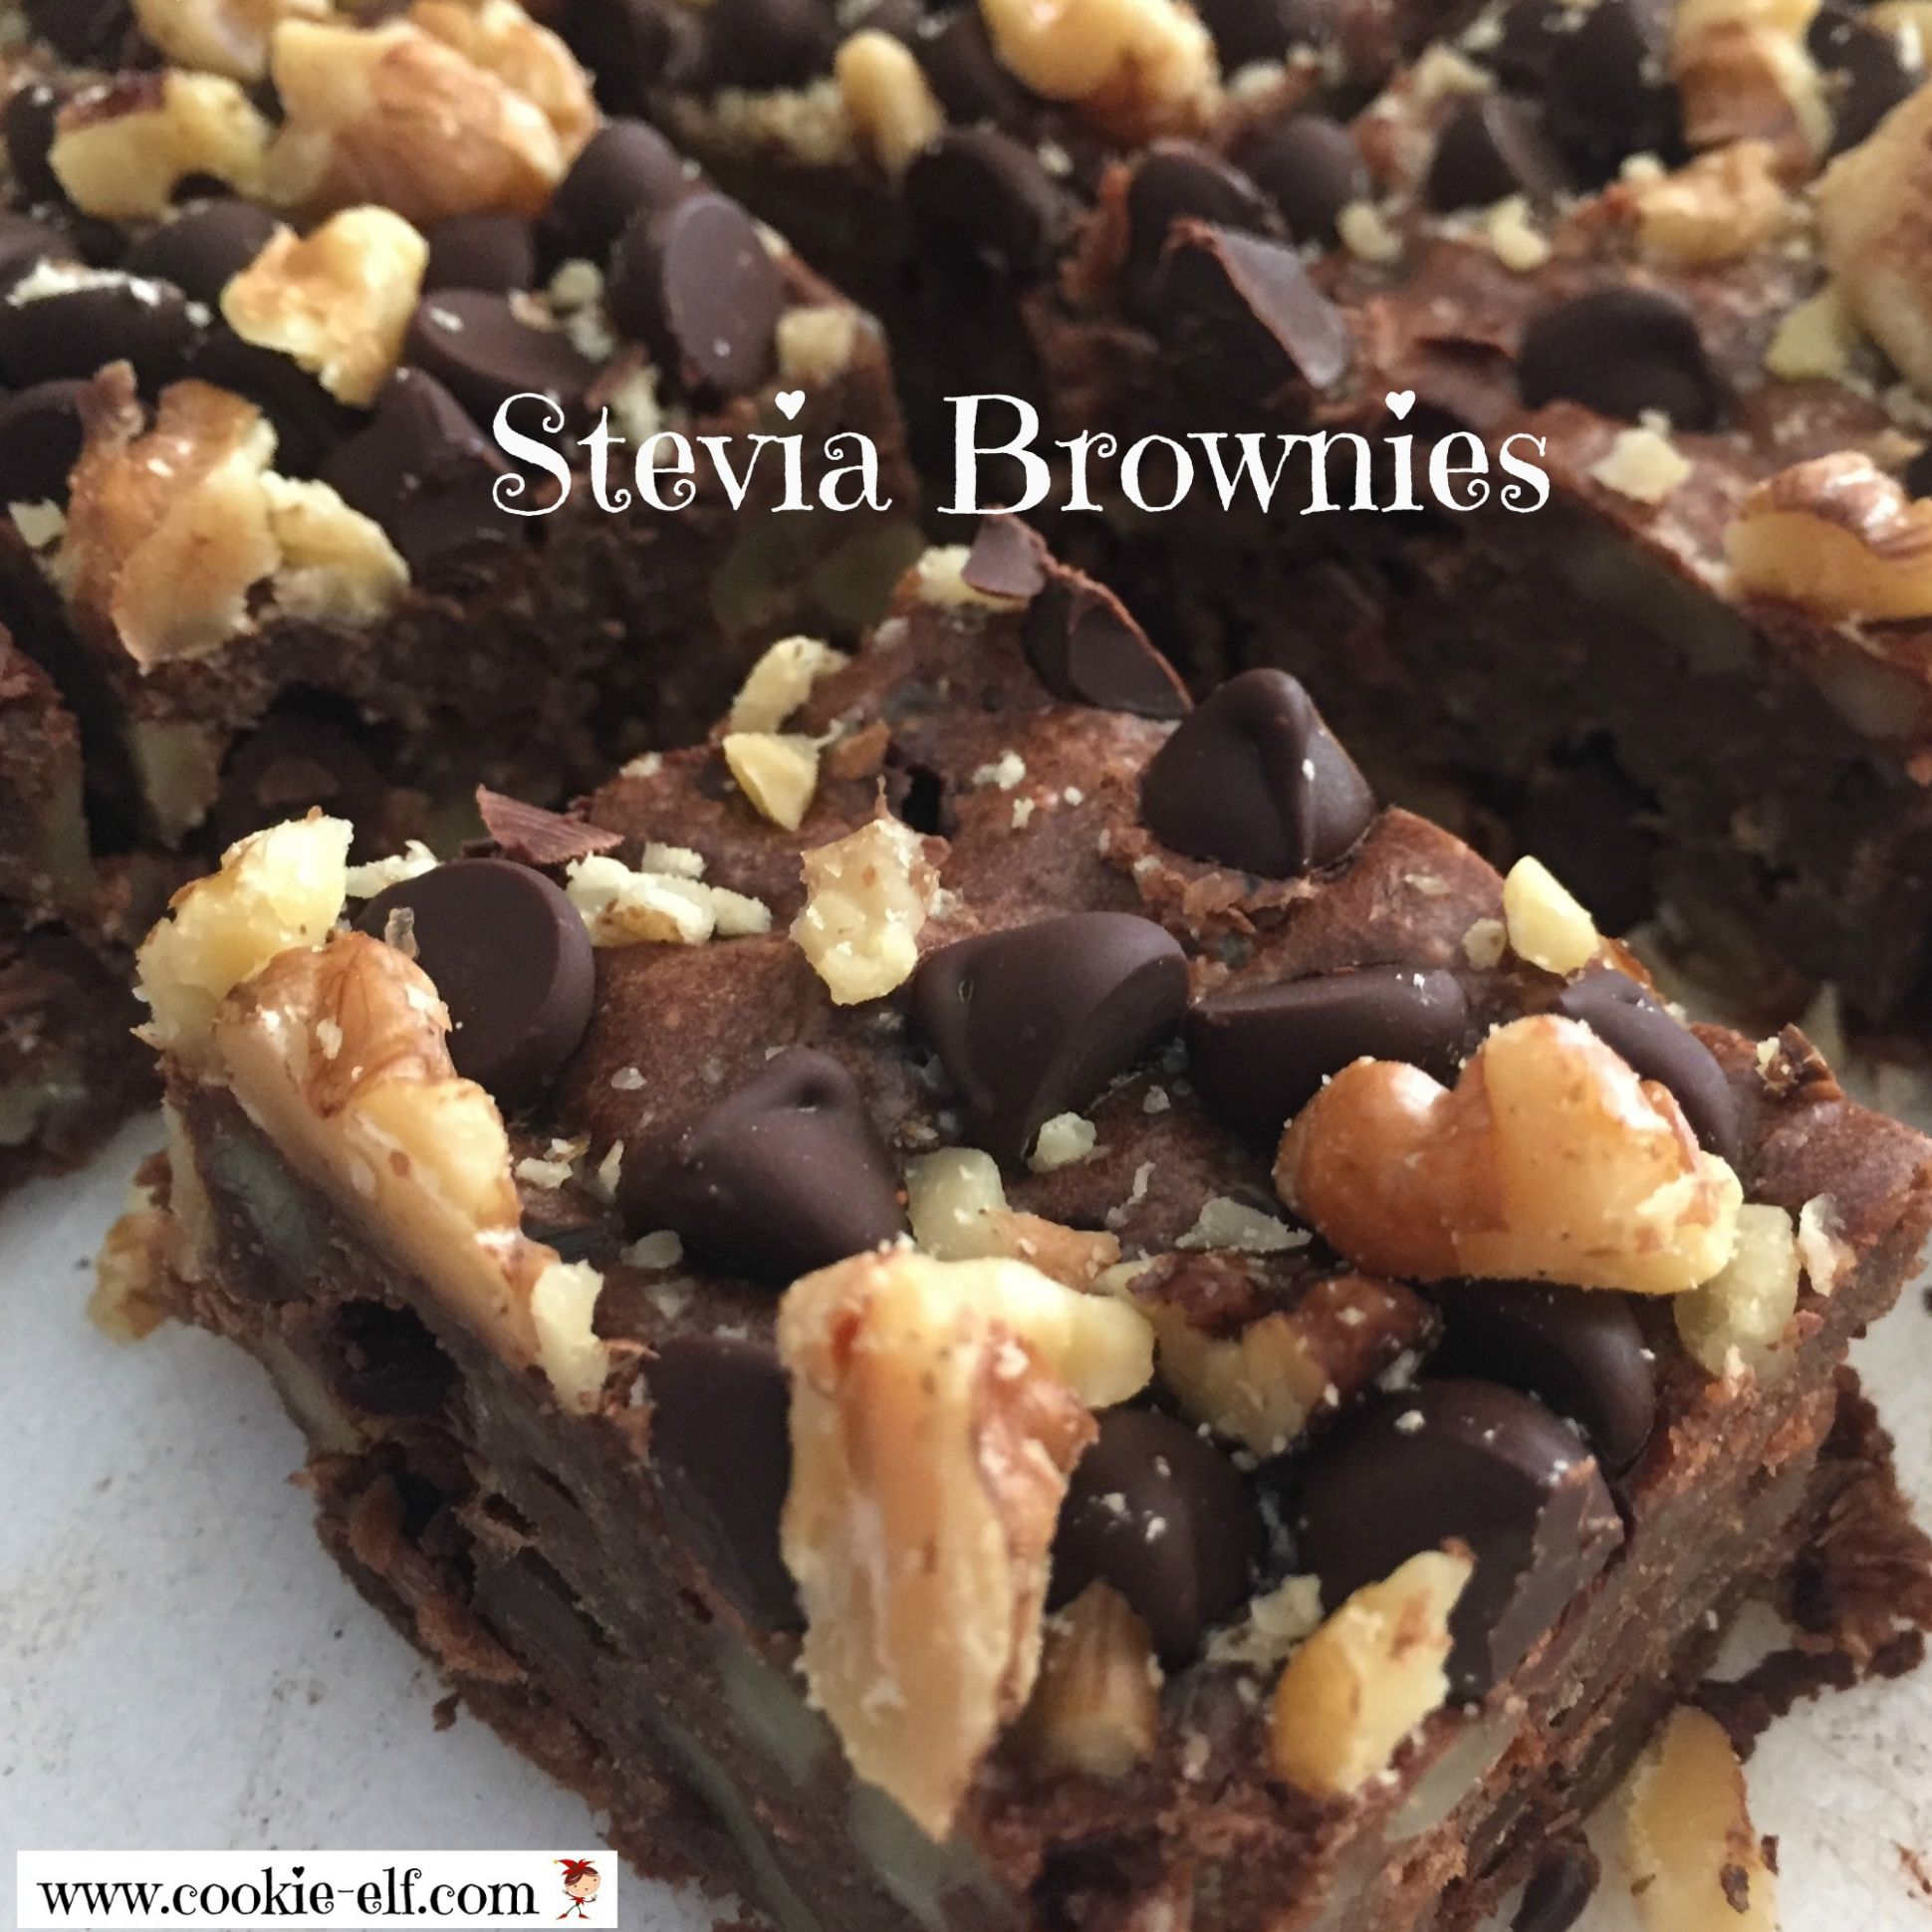 Stevia Brownies: No Sugar – and In the Oven in Less Than 11 Minutes - Dessert Recipes Made With Stevia